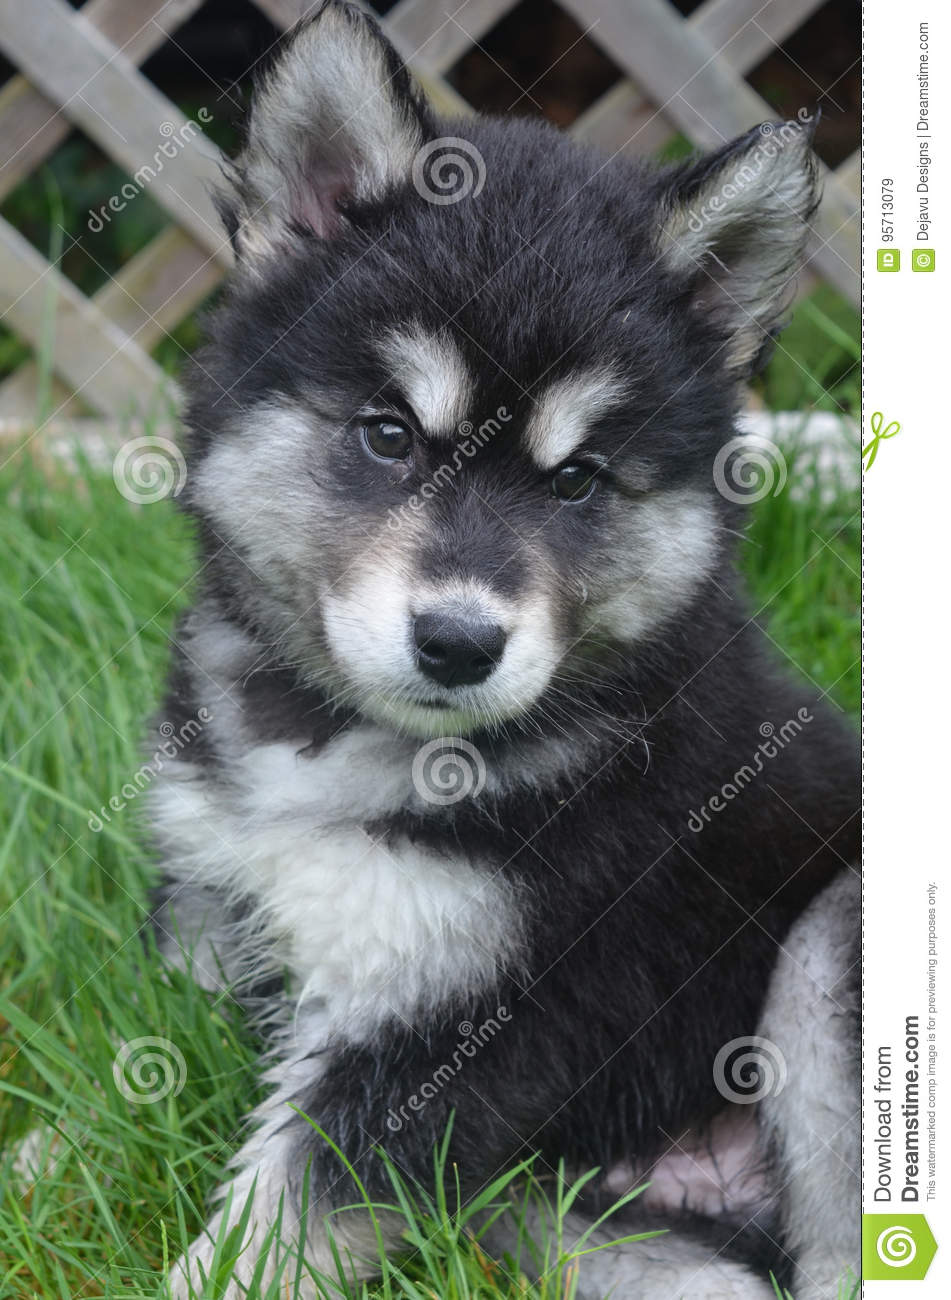 Very Fluffy Fur On An Alusky Puppy Dog Looking Cute Stock